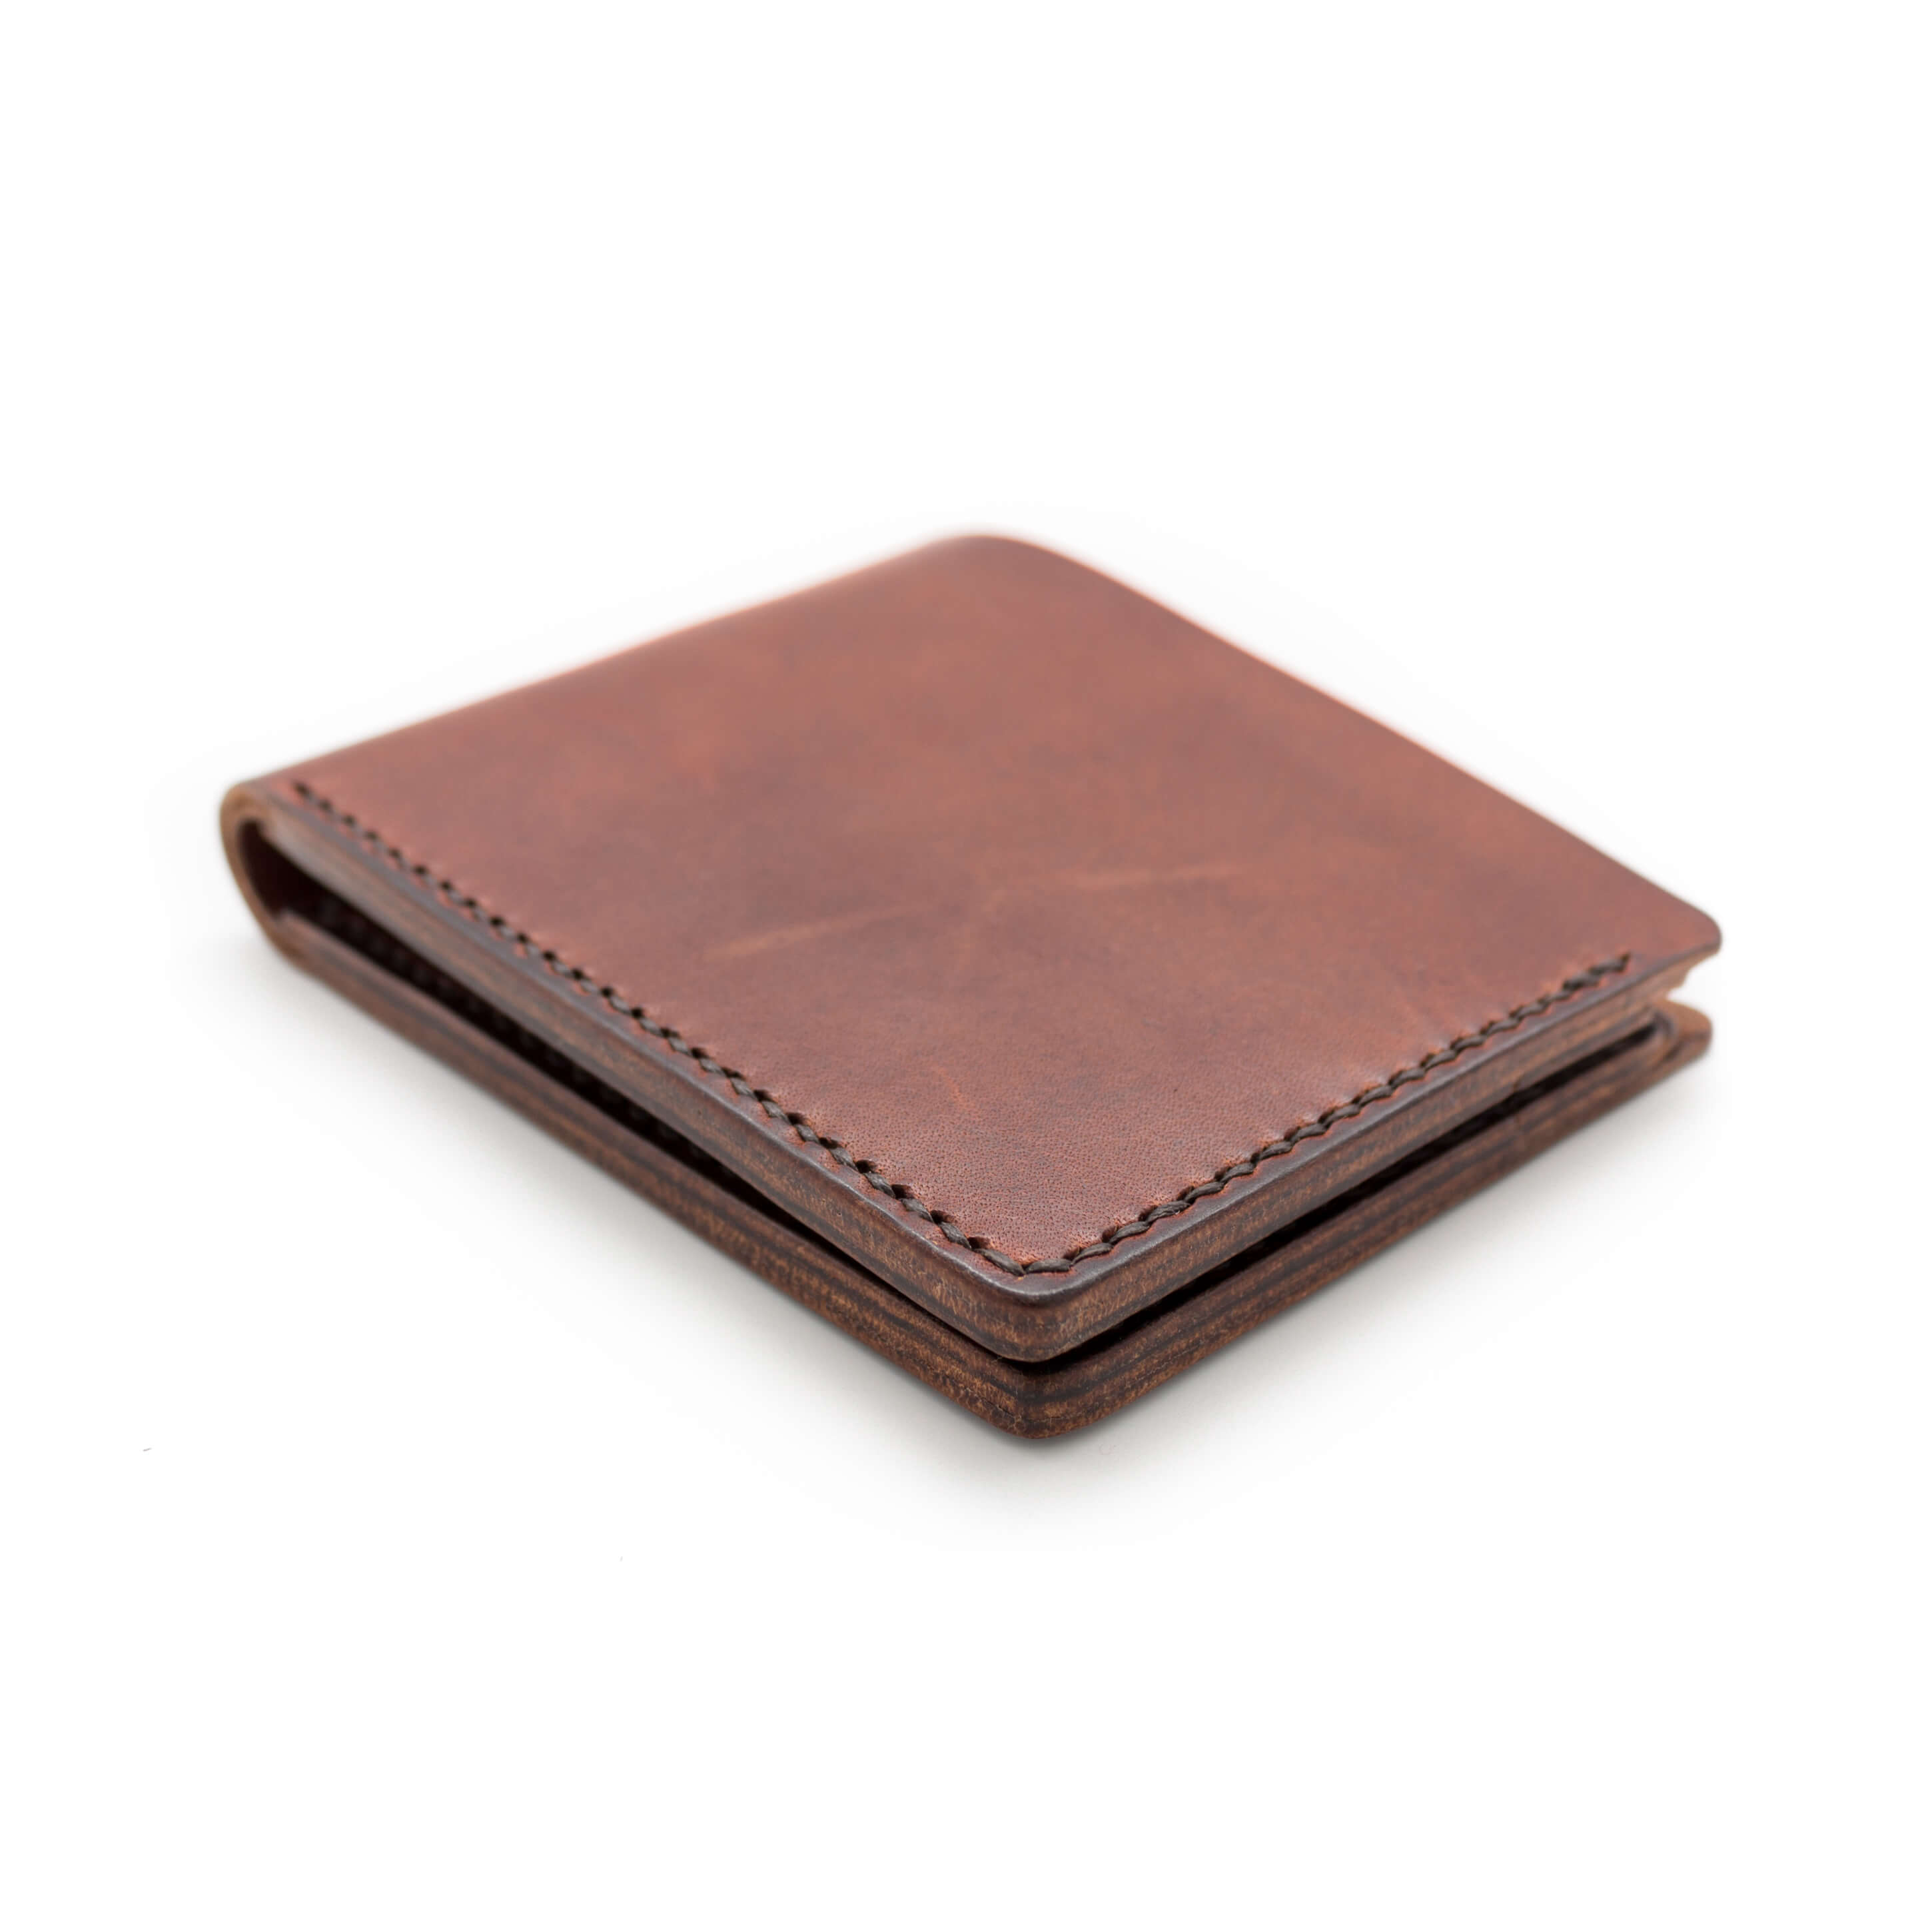 Hand stitched leather bifold wallet